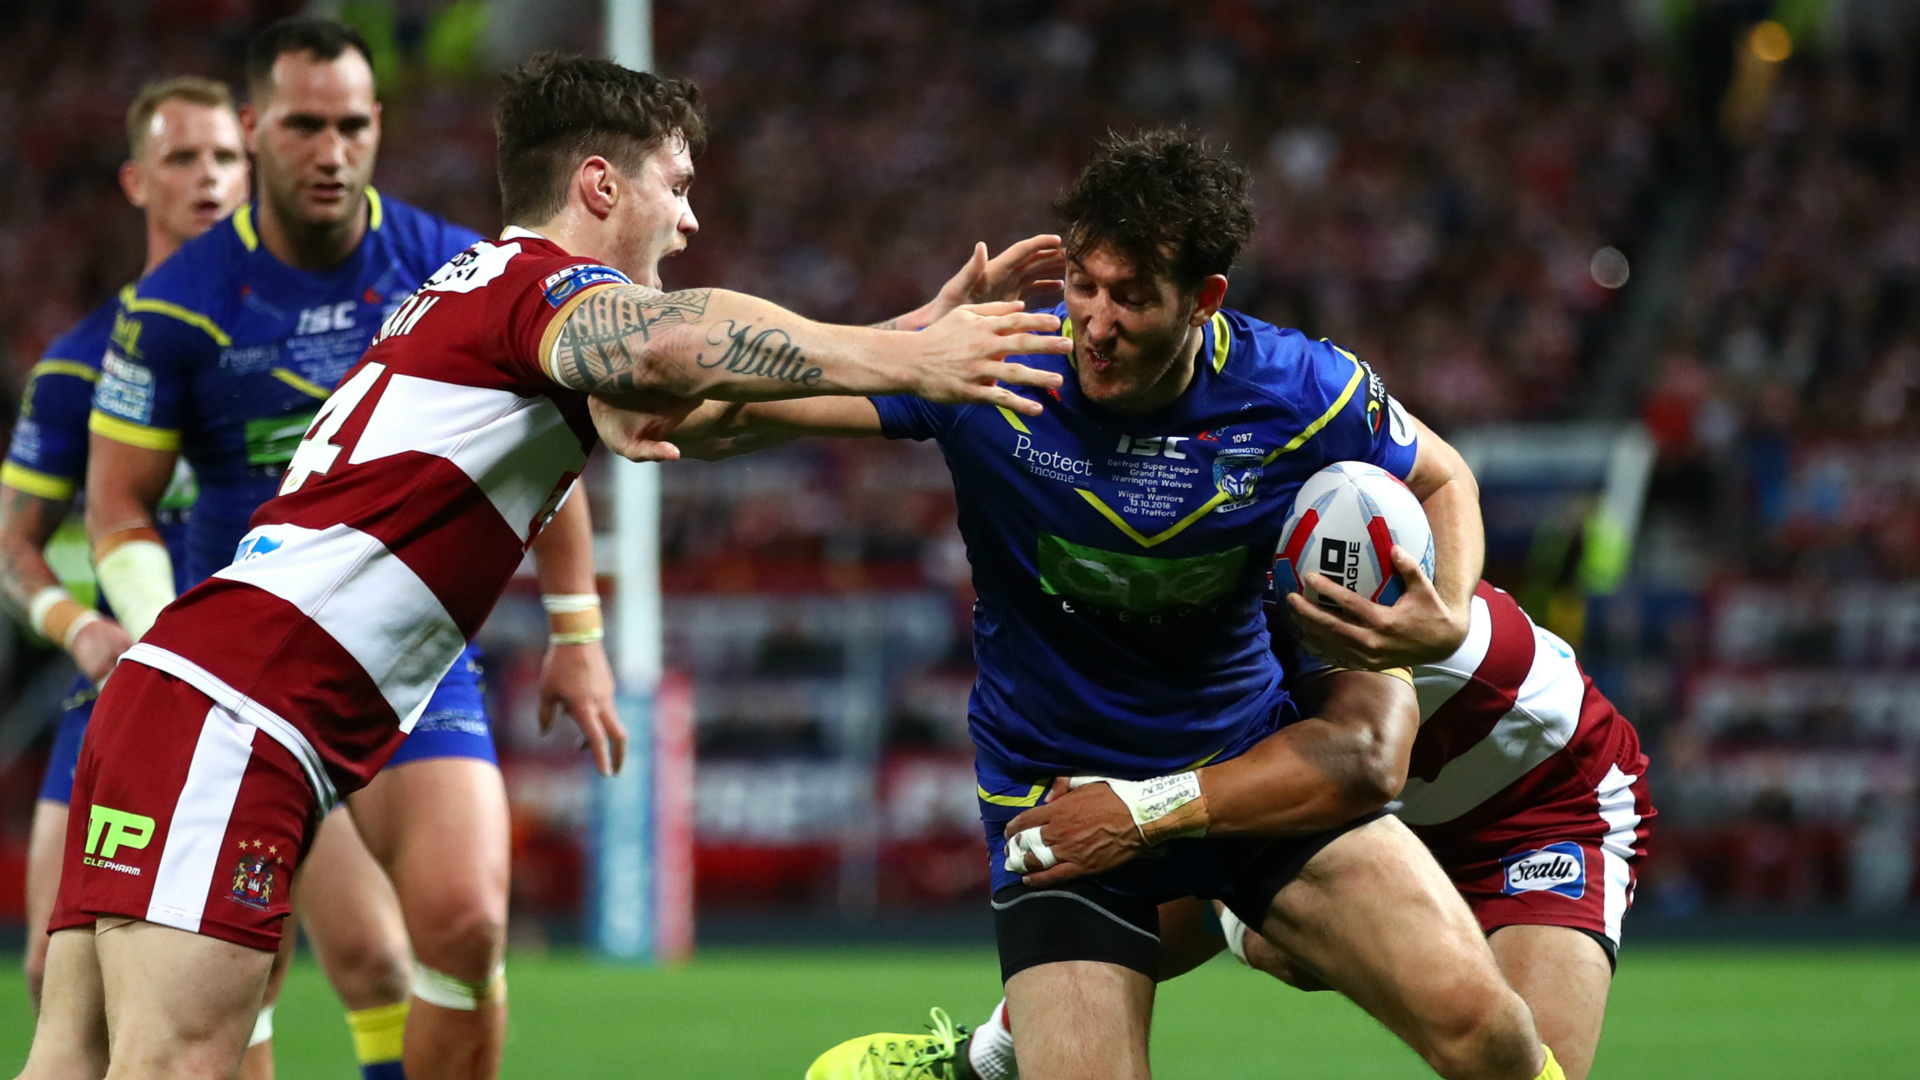 Ratchford set for long injury absence